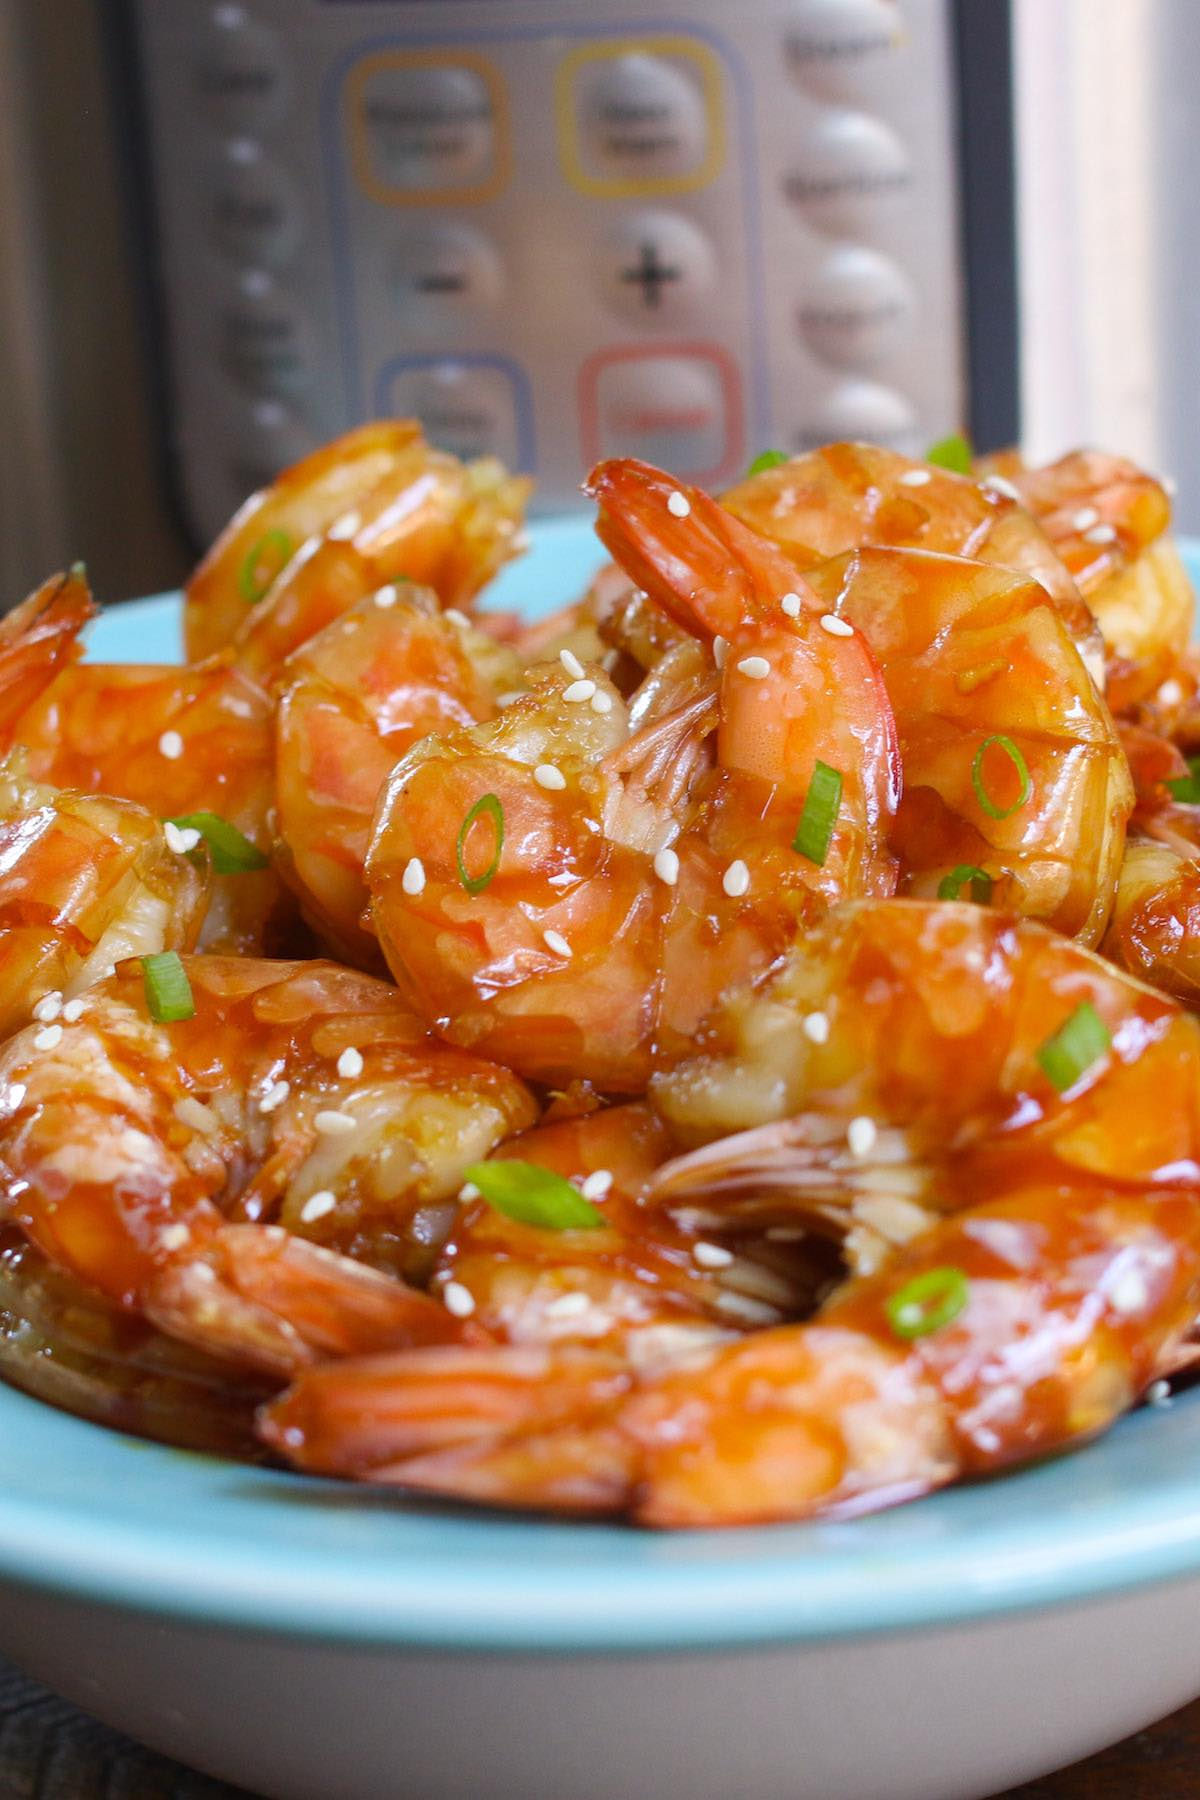 Instant Pot Shrimp with honey garlic sauce garnished with minced green onion and sesame seeds on a serving plate